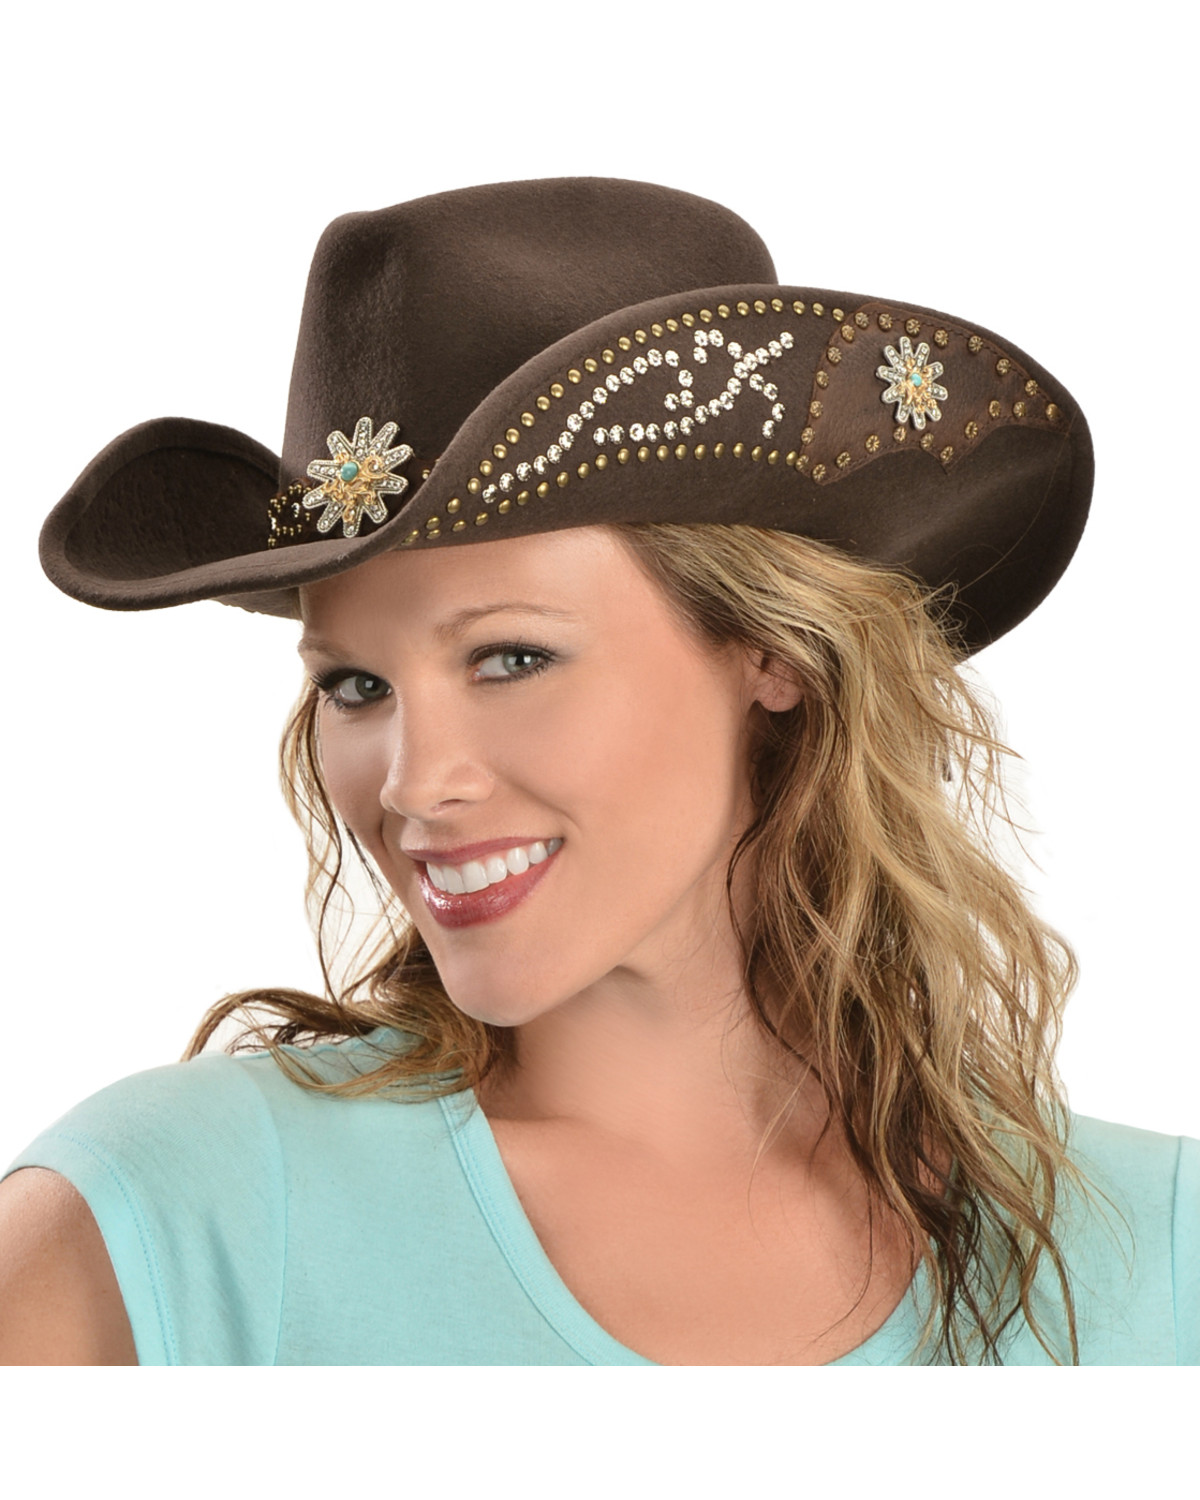 Bullhide Hats Women s Your Everything Embellished Felt Cowgirl Hat ... 101a2fbf28d